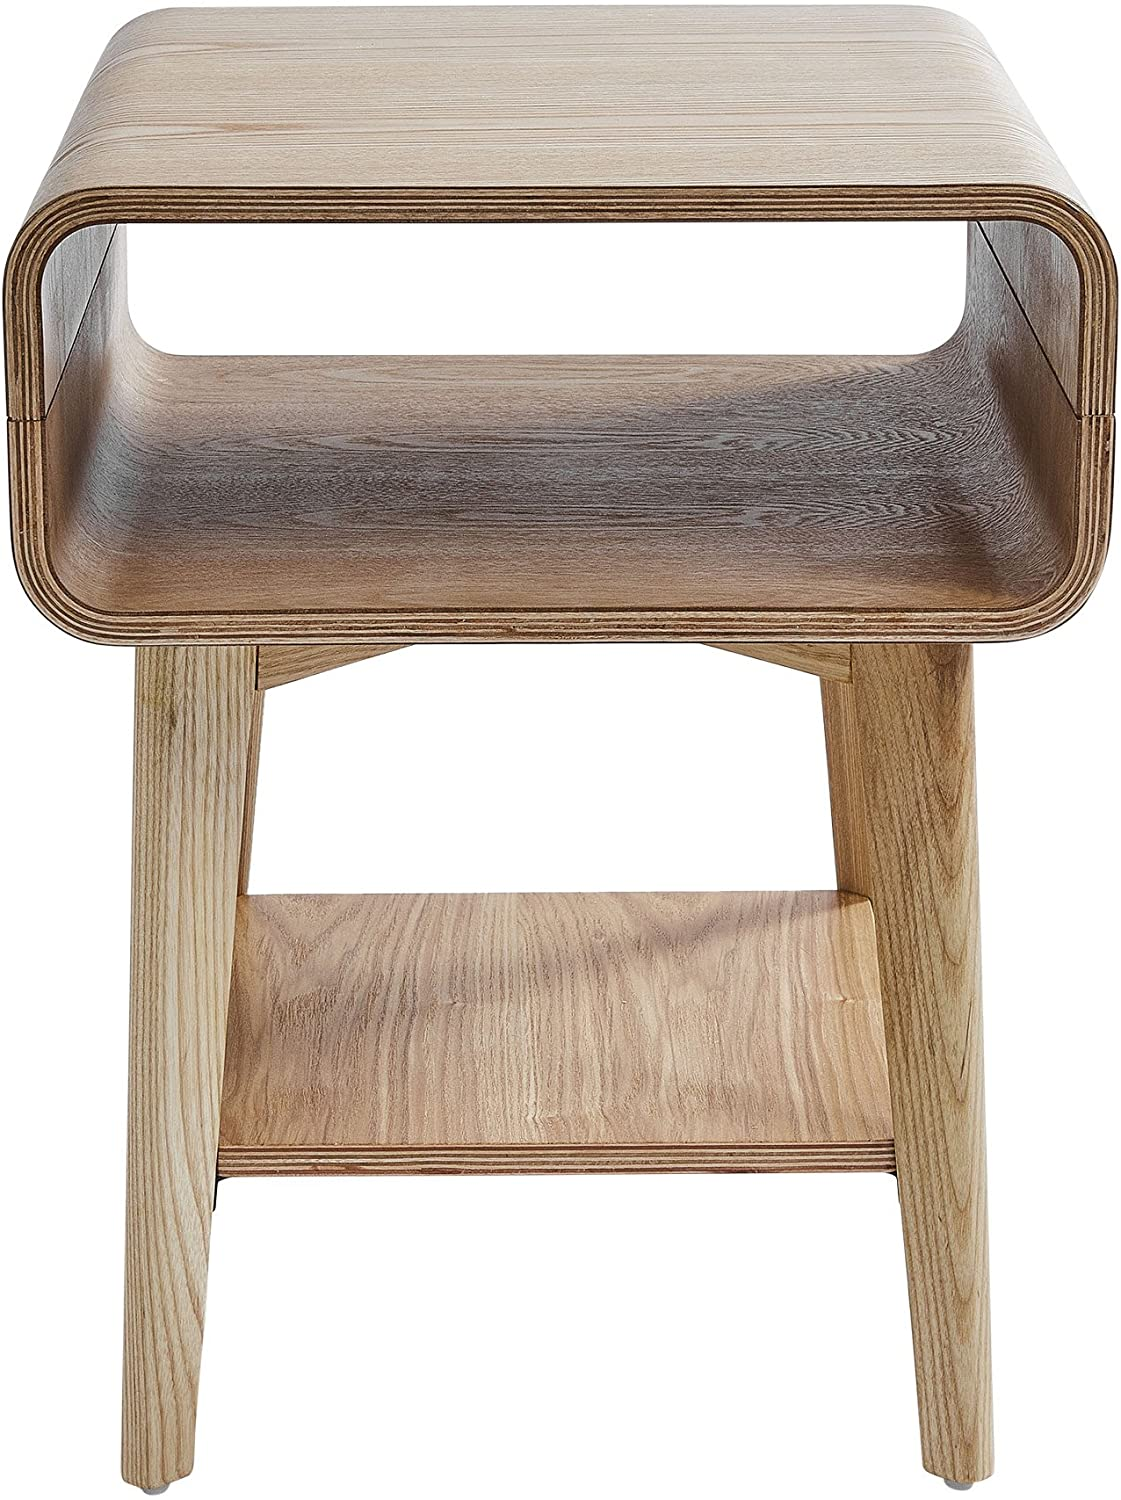 Rustic Solid Reclaimed Wooden Modern Antique Handmade Bedside Tables